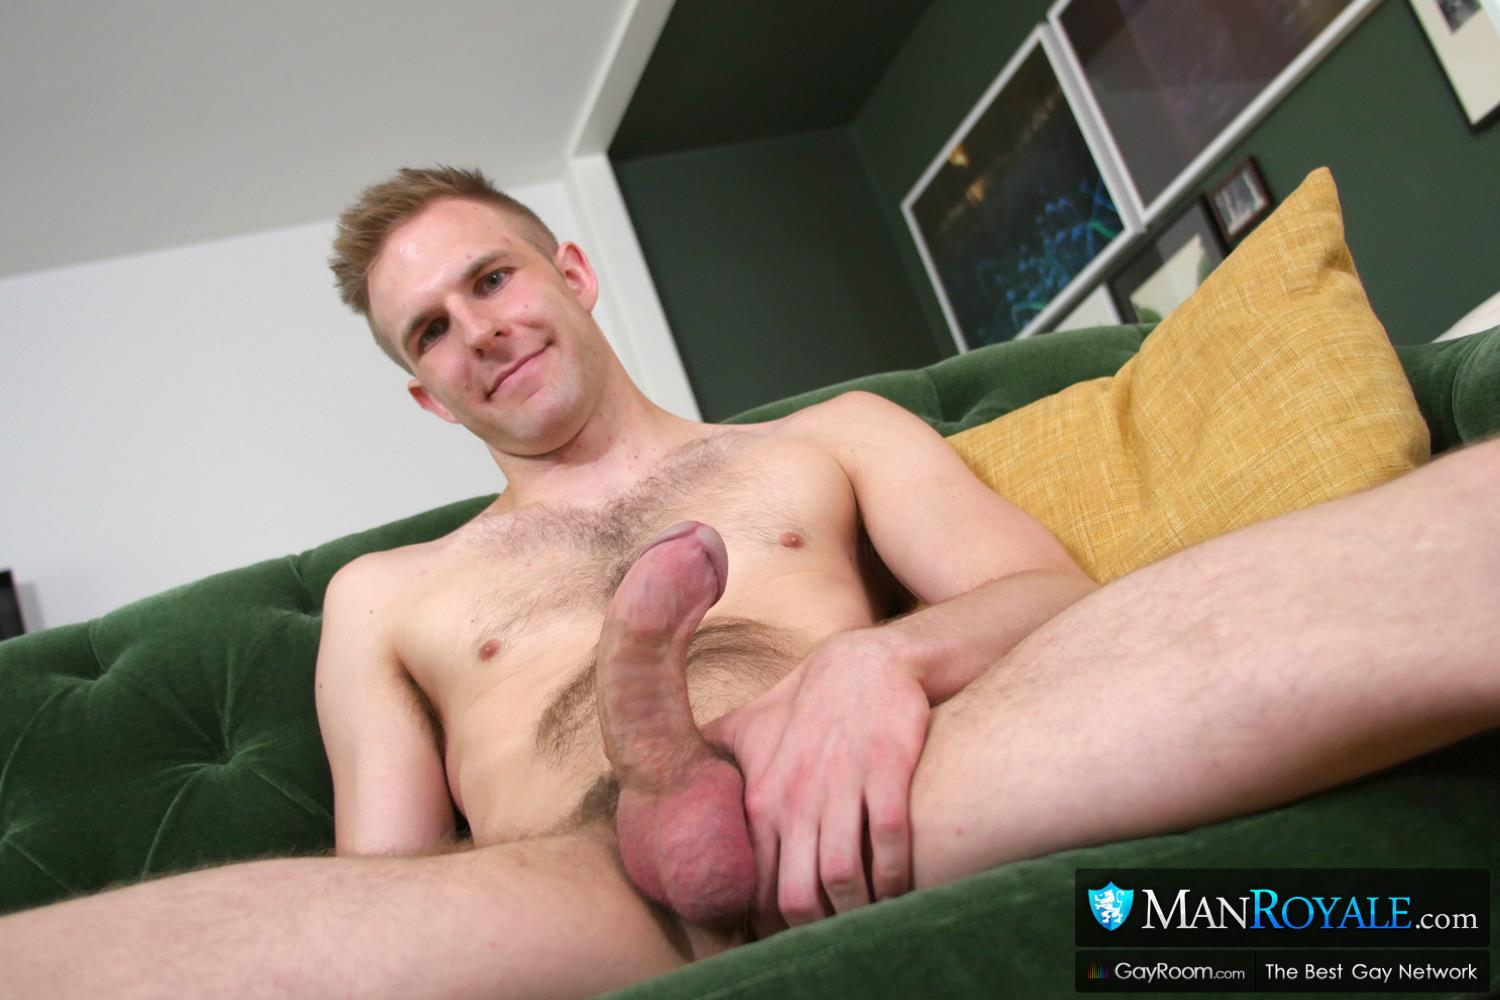 Man-Royale-Arad-Winwin-and-Jay-Taylor-Huge-Dick-Iranian-Fucking-A-White-Boy-Video-04 Hot Persian Arad Winwin Fucks His Buddy With His Big Thick Cock